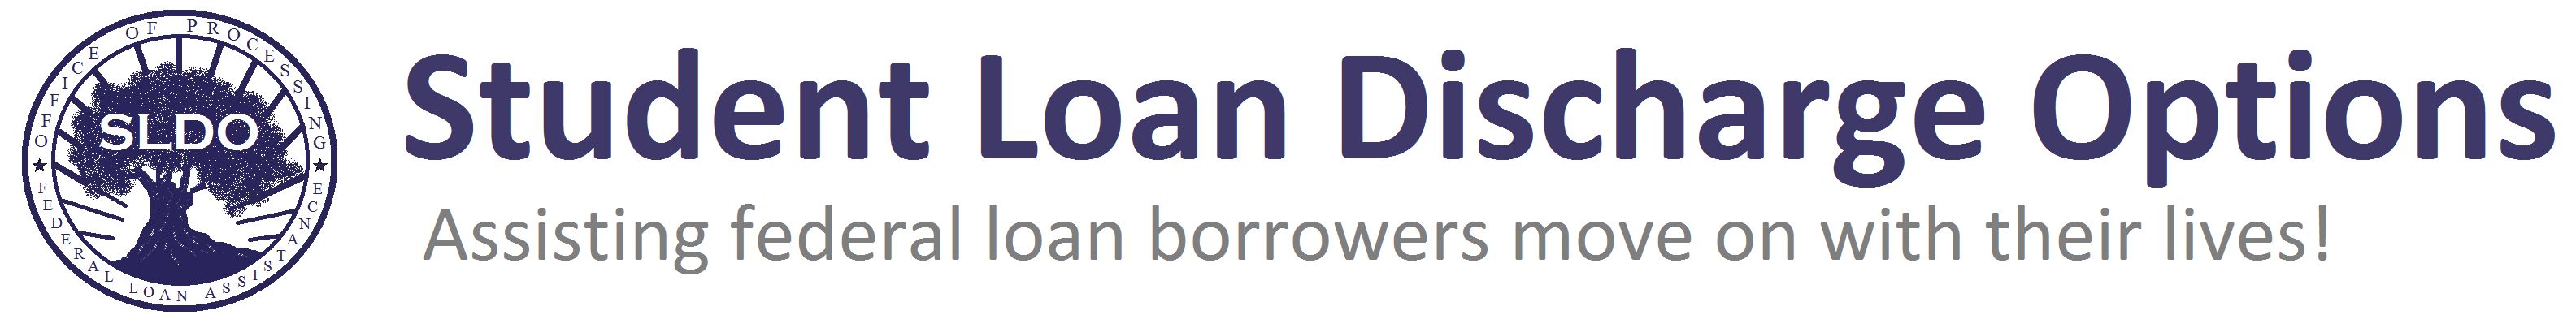 Student Loan Discharge Options